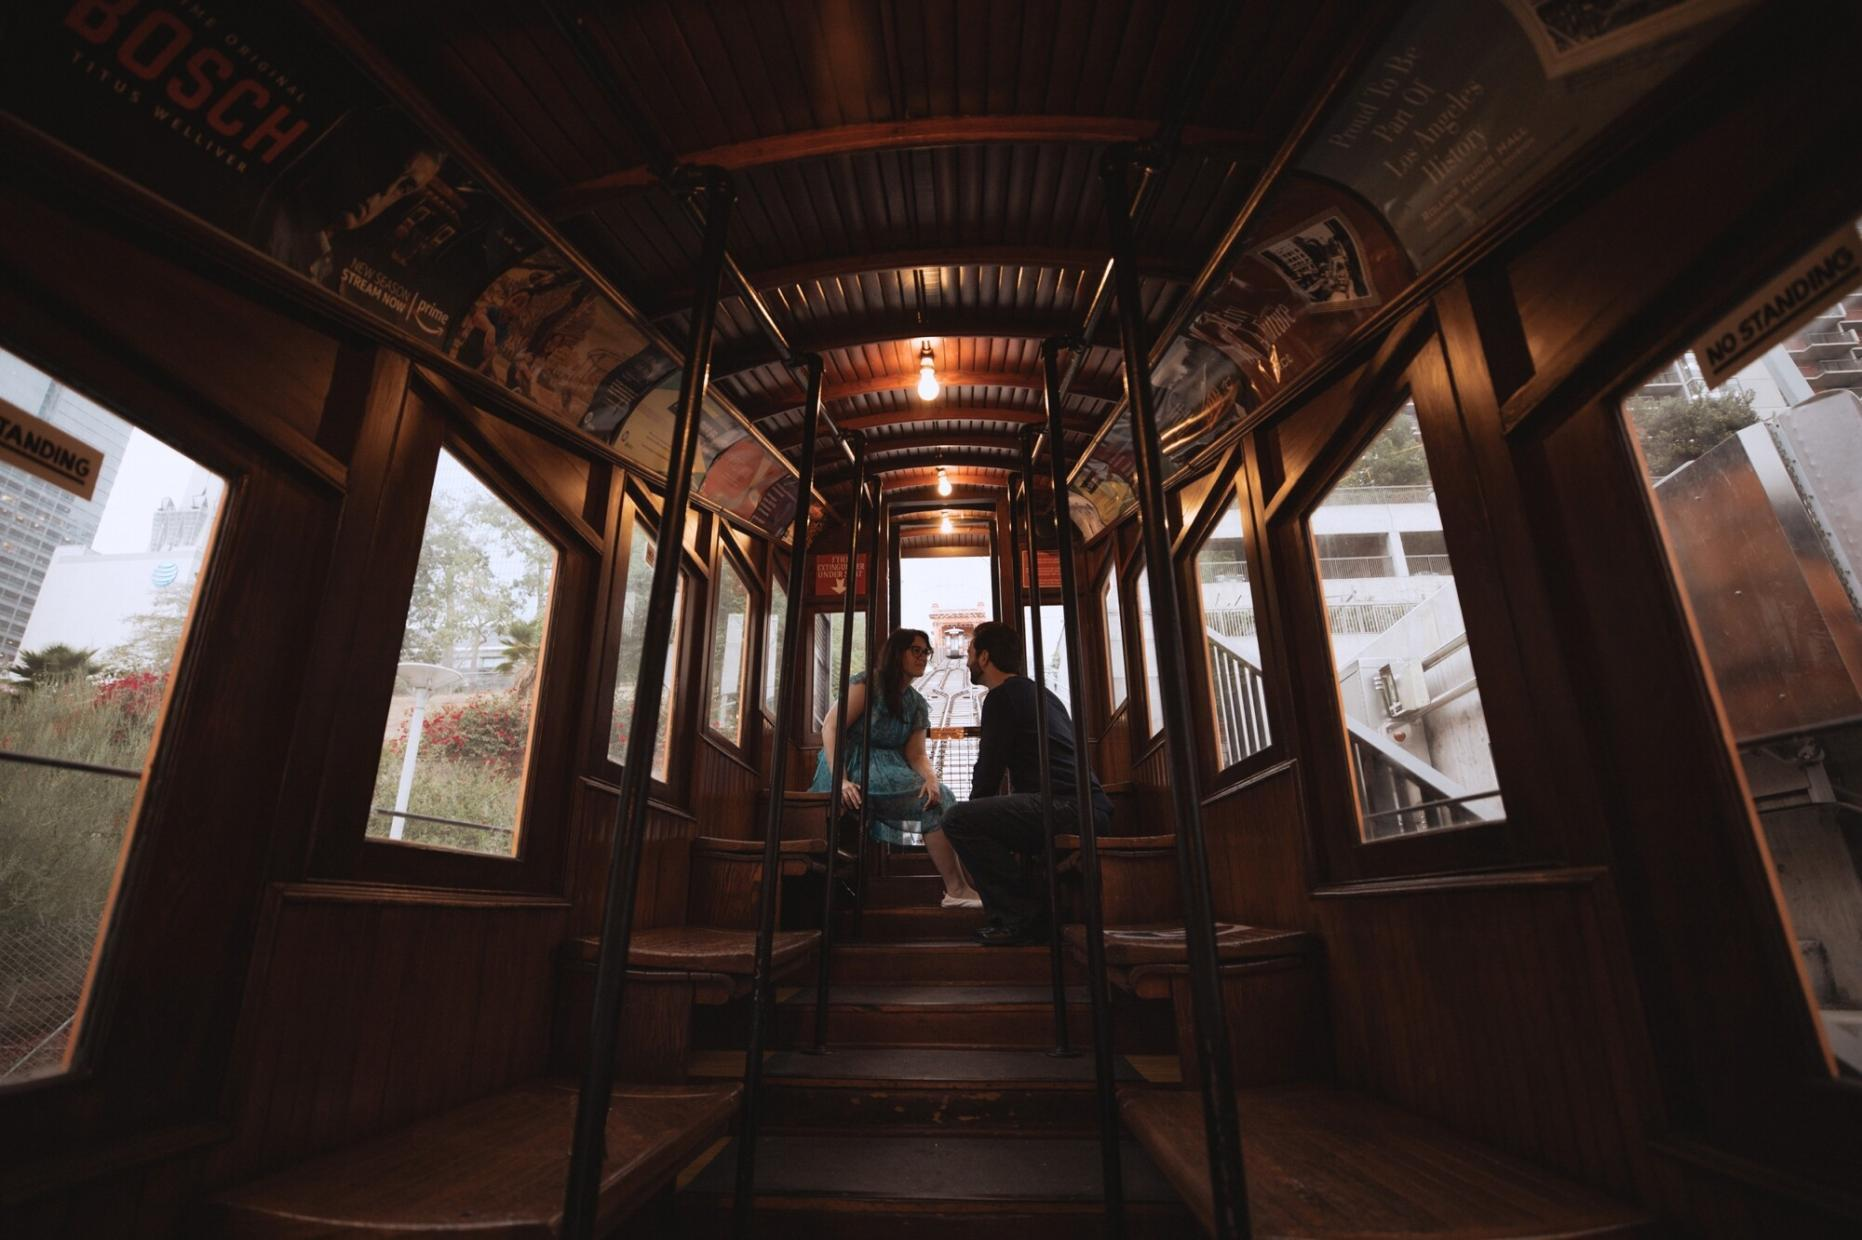 dtla angel's flight engagement session